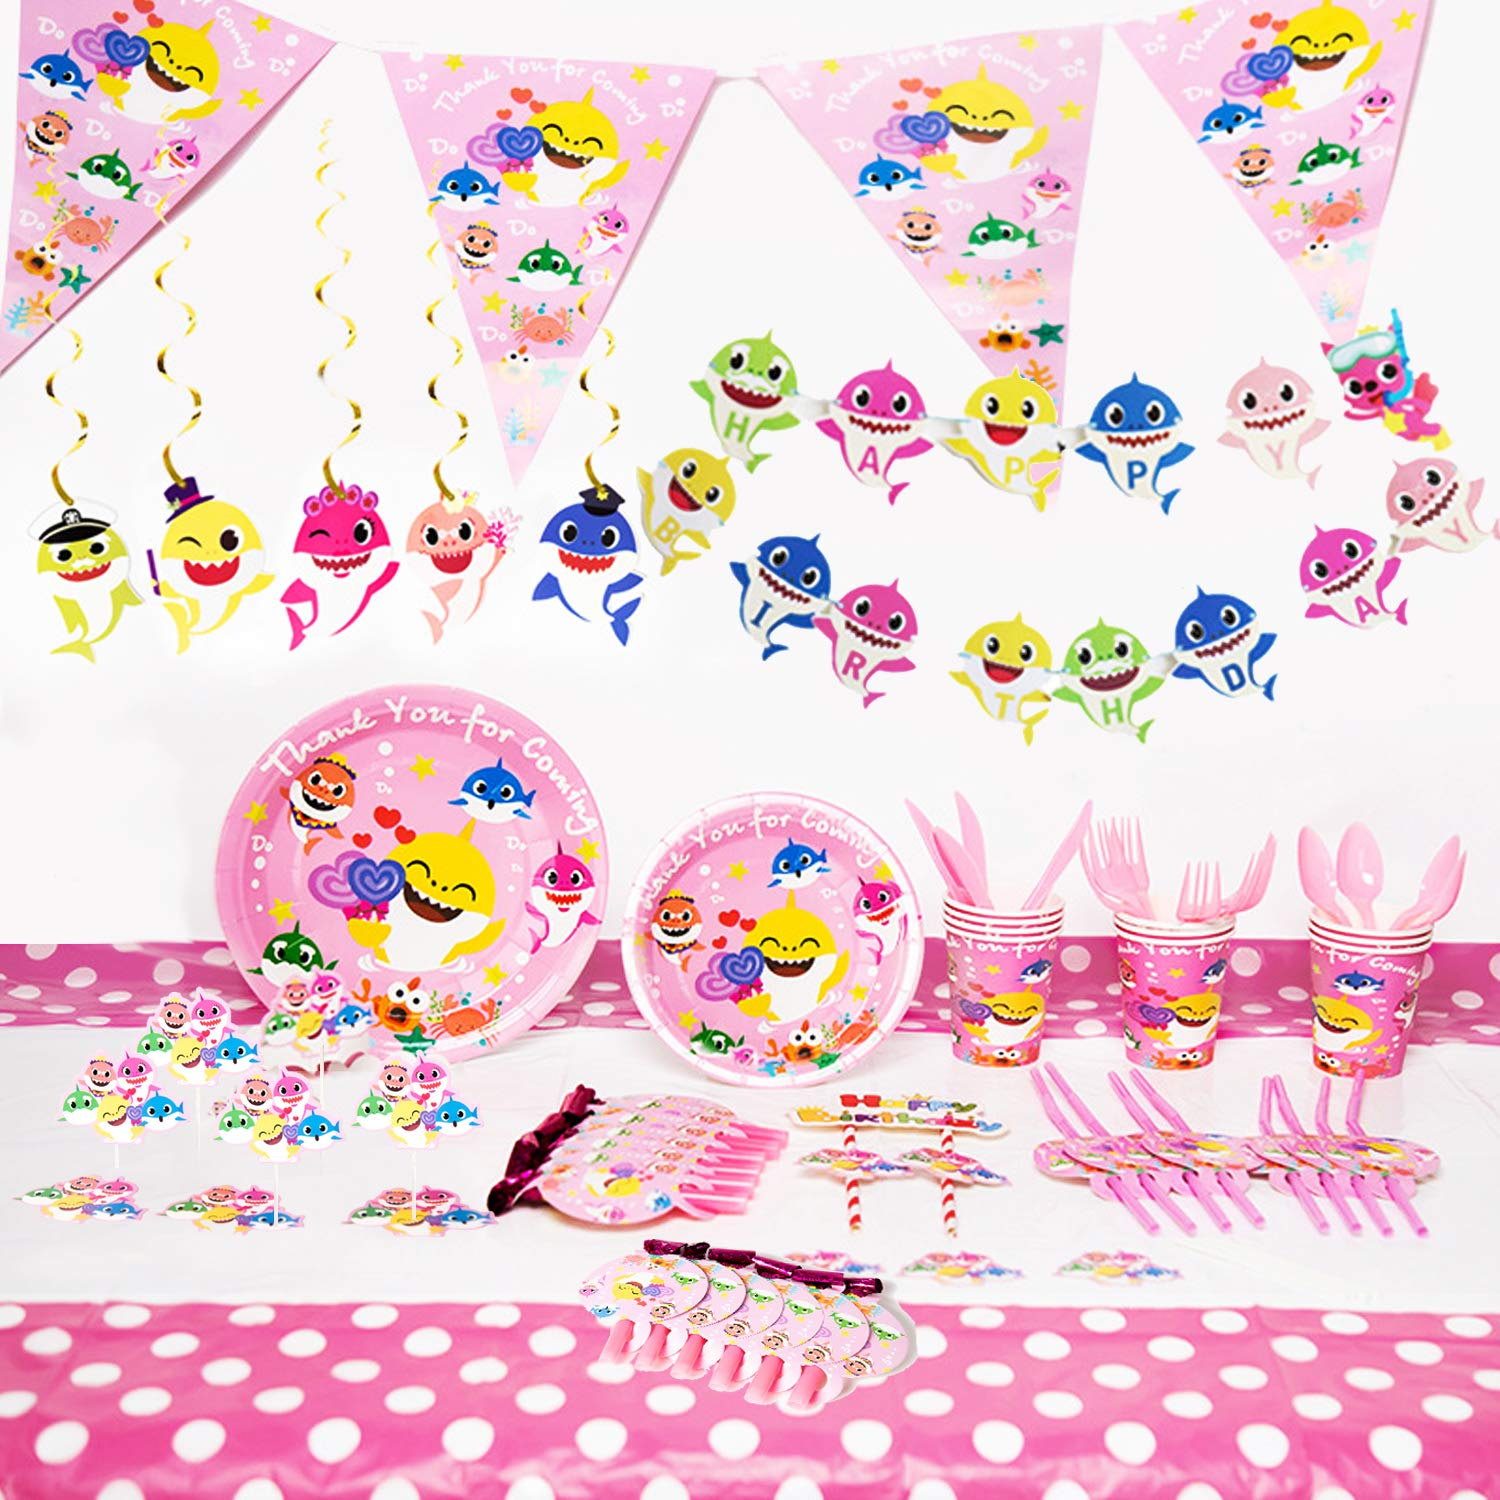 Baby Cute Shark Party Supplies Set, 126 Pieces Shark Party Decoration For Baby Birthday Favor, Shark Party Tableware Cake Topper Banner Pennant Hanging Decorations Whistle Straws and Dessert Set, Doo Doo Decorations Supplies (Pink)